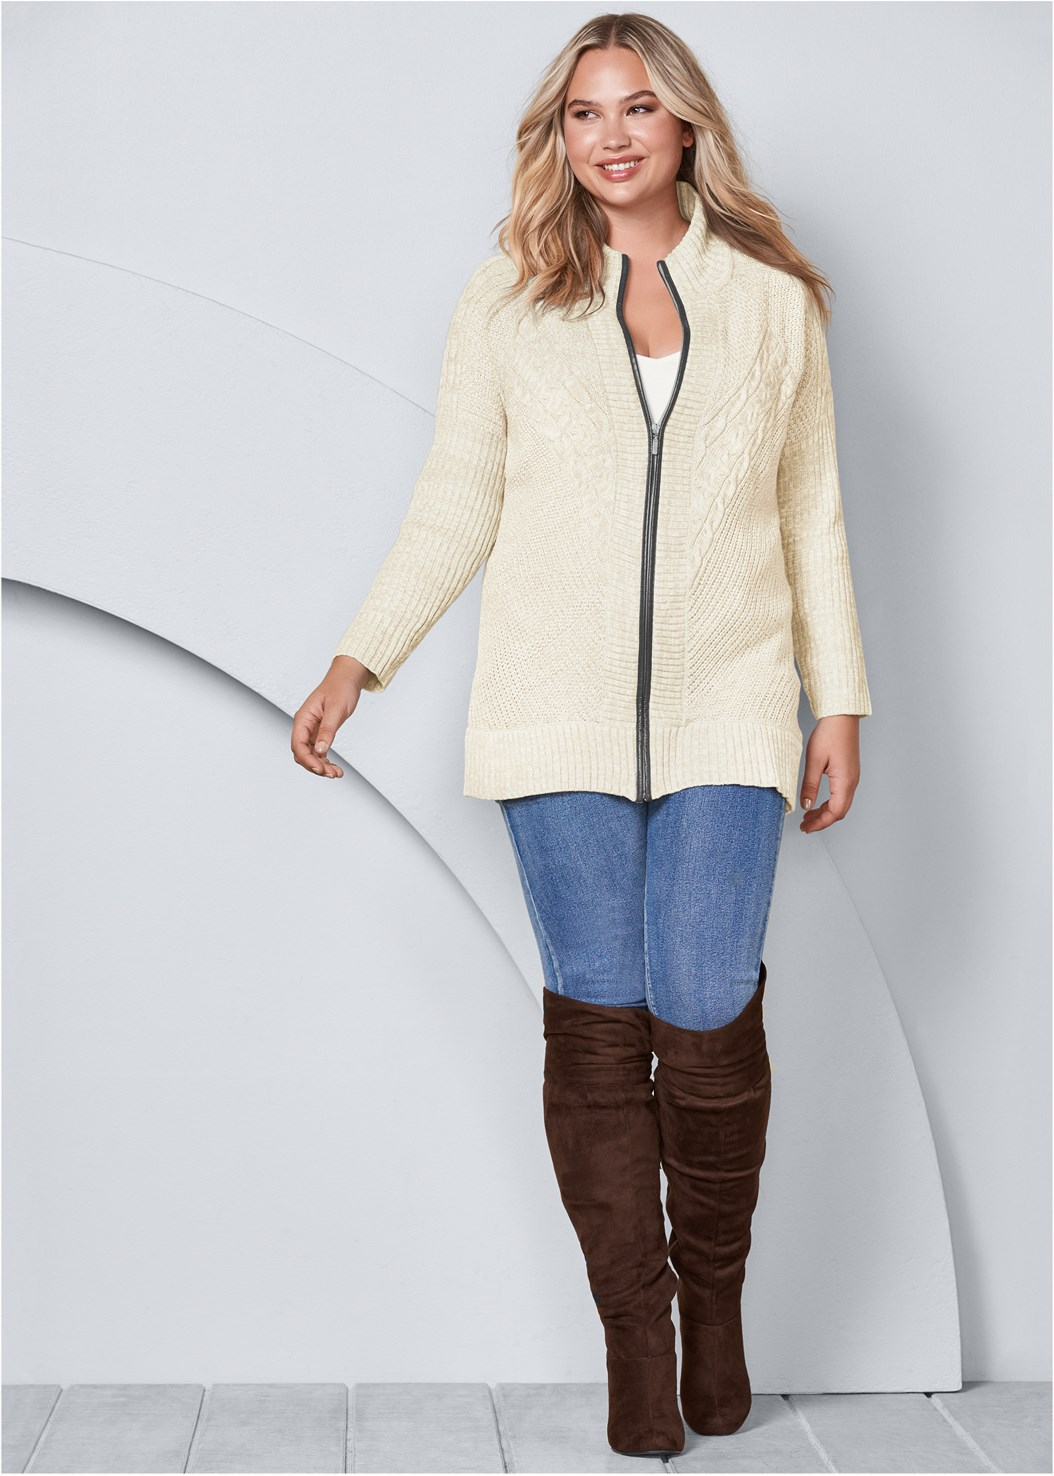 Faux Leather Trim Cardigan,Basic Cami Two Pack,Mid Rise Color Skinny Jeans,Fold Over Boot,Stud Detail Scarf